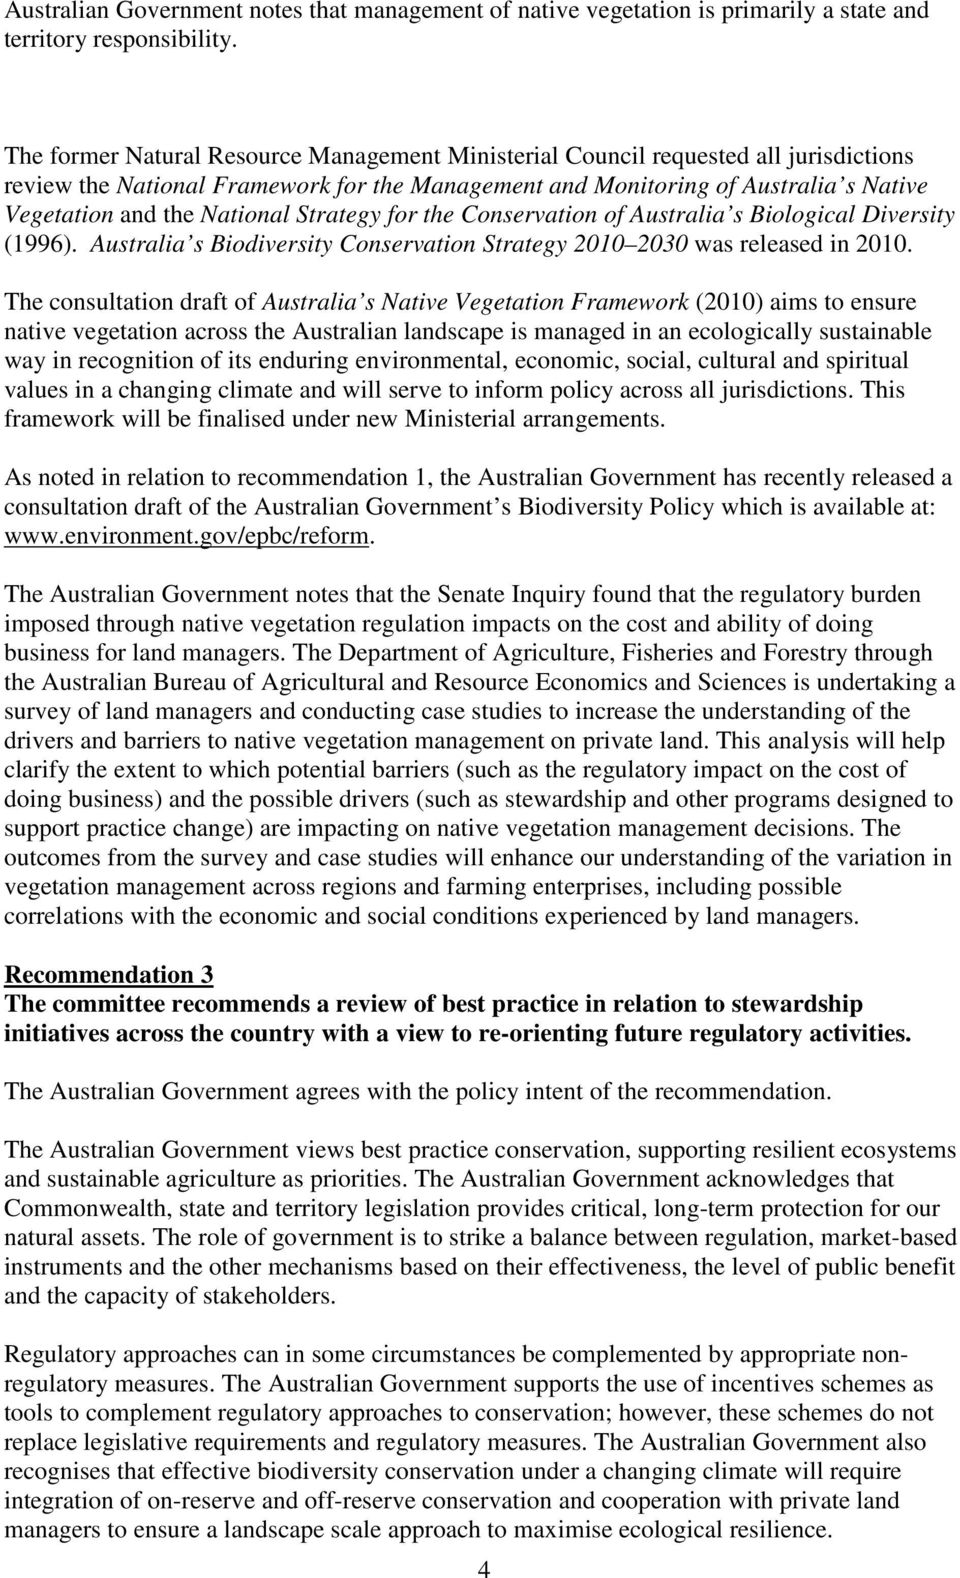 National Strategy for the Conservation of Australia s Biological Diversity (1996). Australia s Biodiversity Conservation Strategy 2010 2030 was released in 2010.